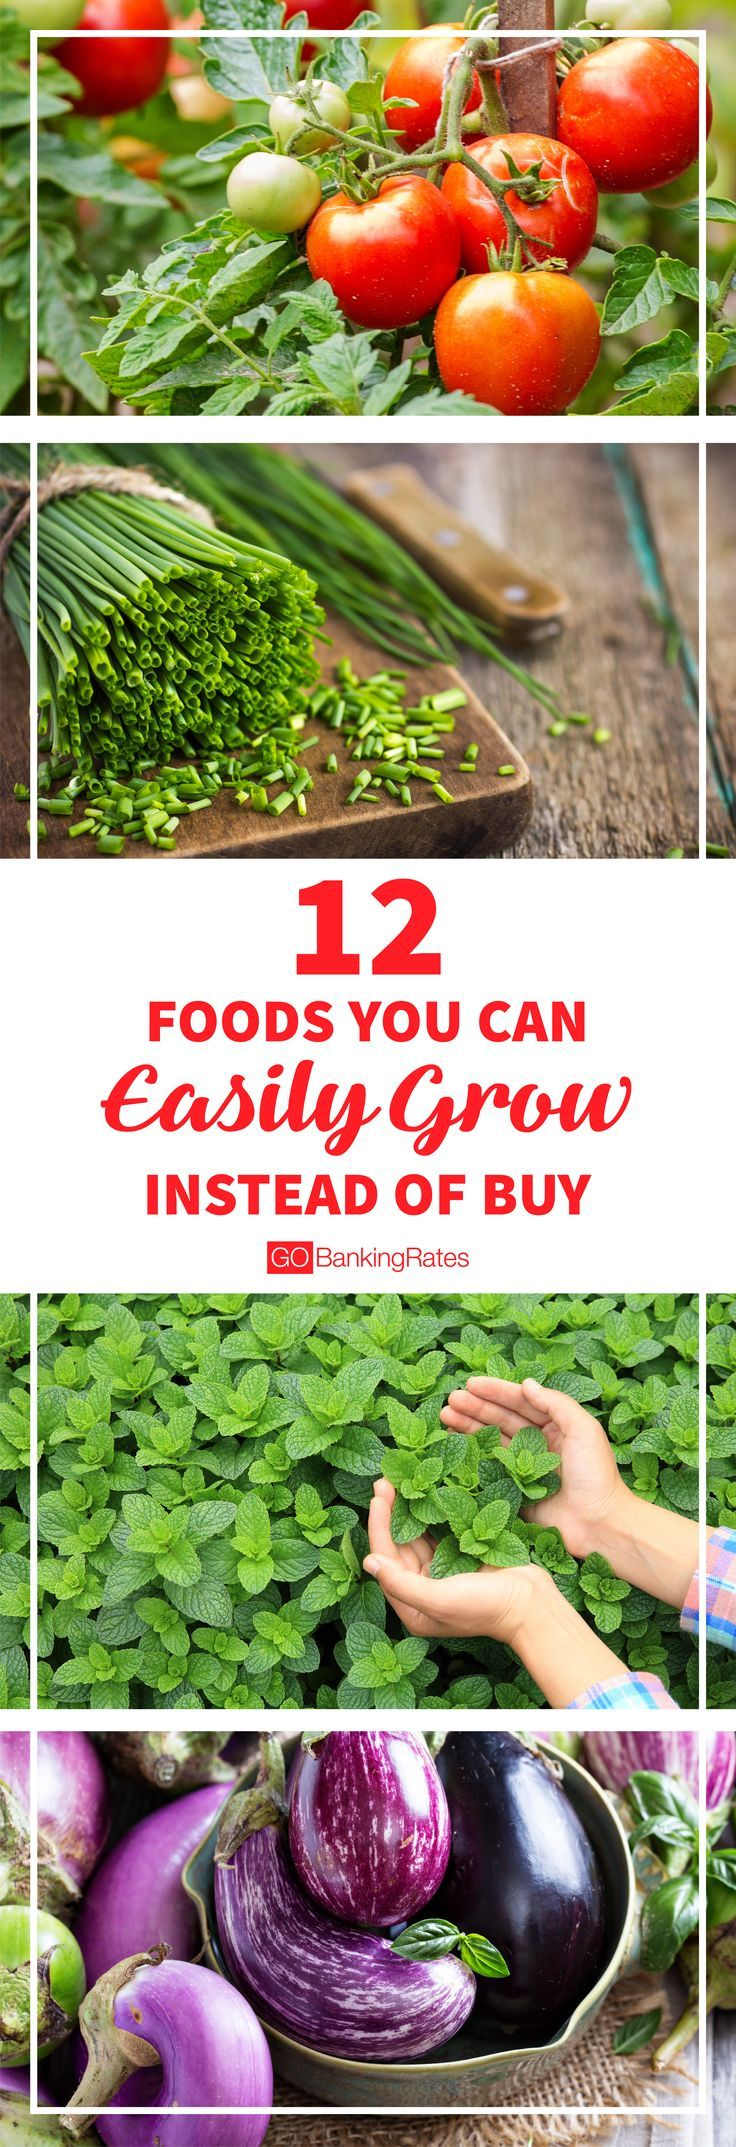 You could easily save money, time, and increase your health by growing produce yourself.